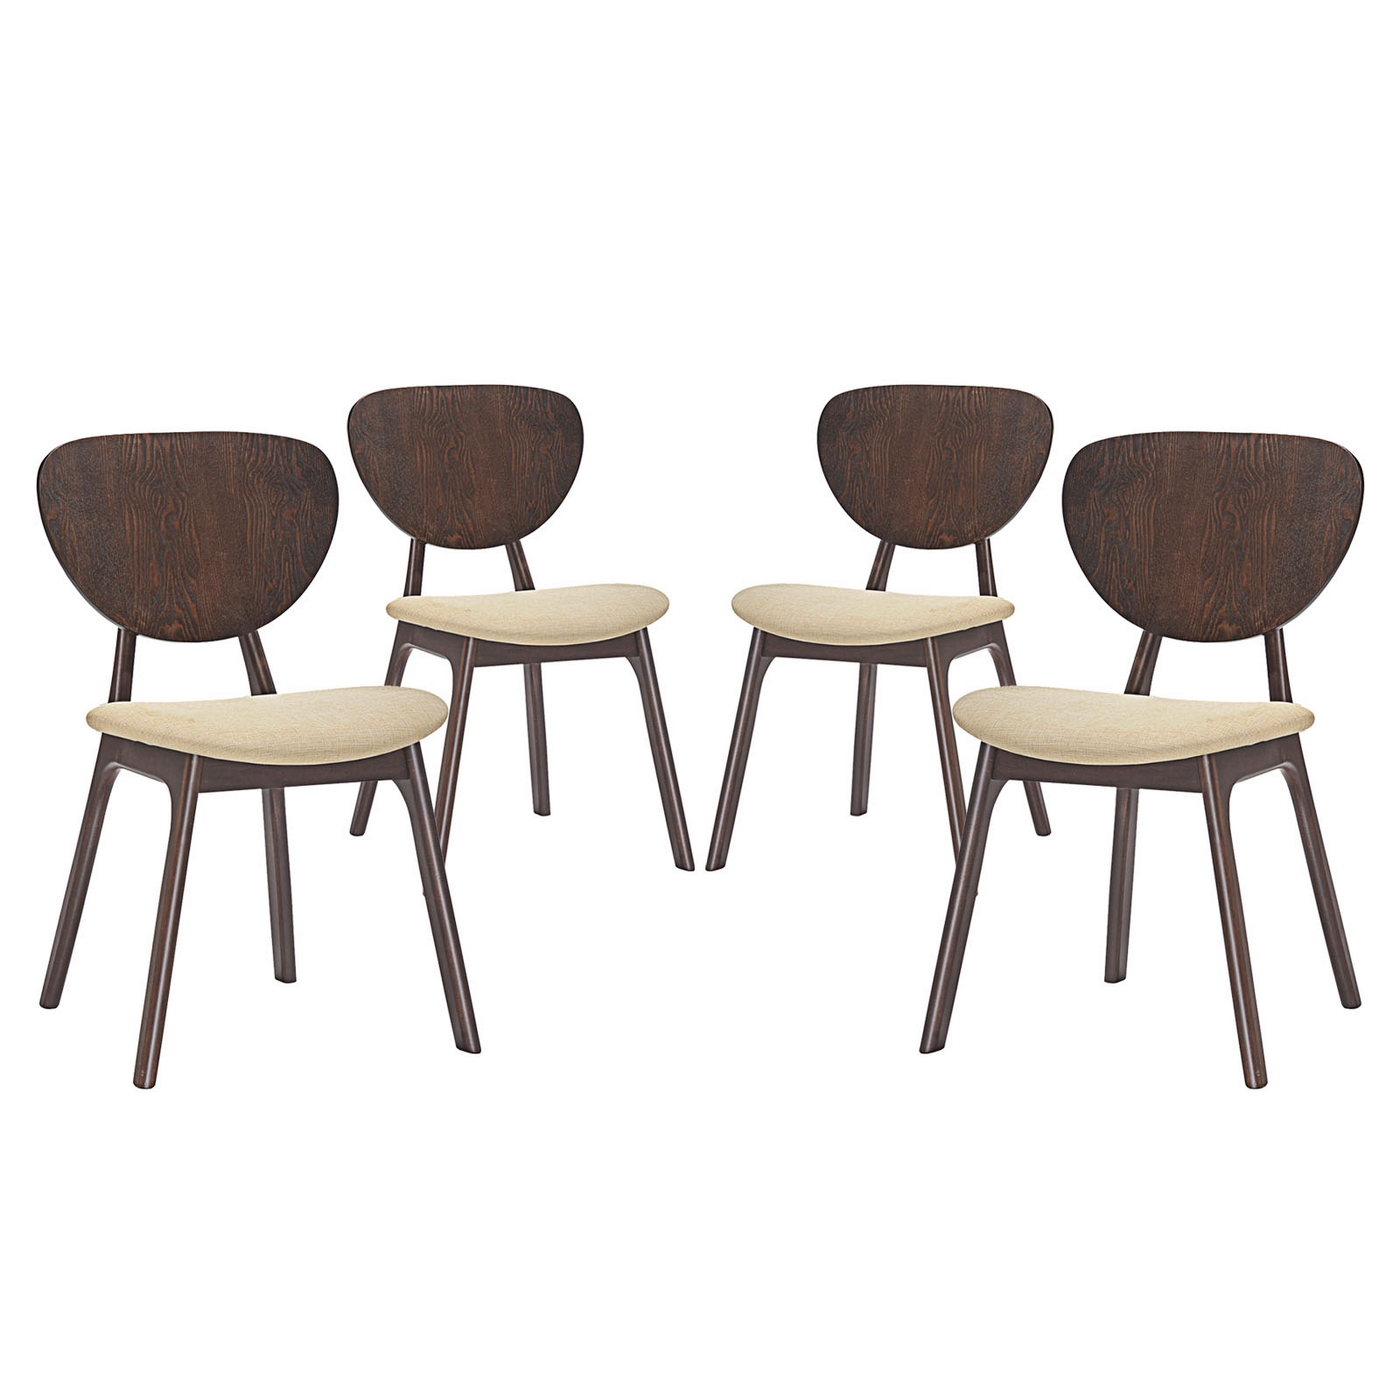 Set of 4 murmur vintage modern wooden dining side chair for Modern walnut dining chairs